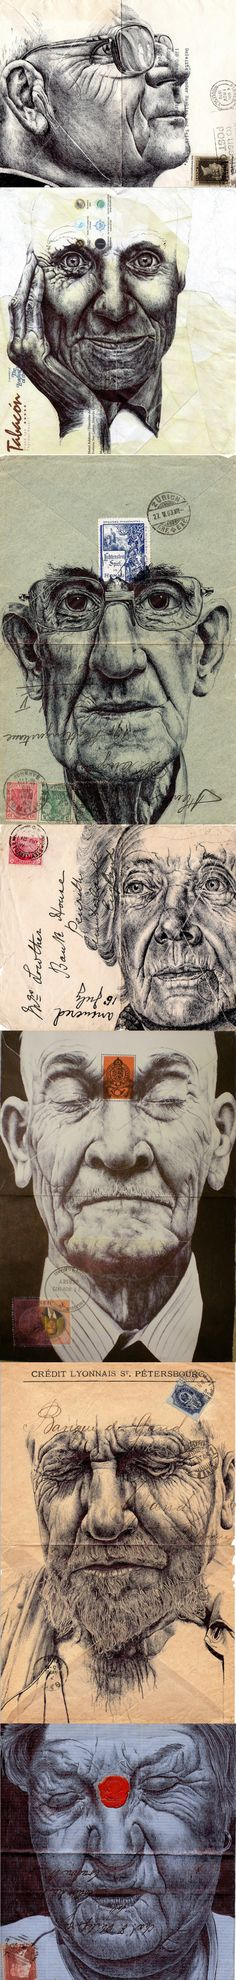 Mark Powell faces on vintage envelopes